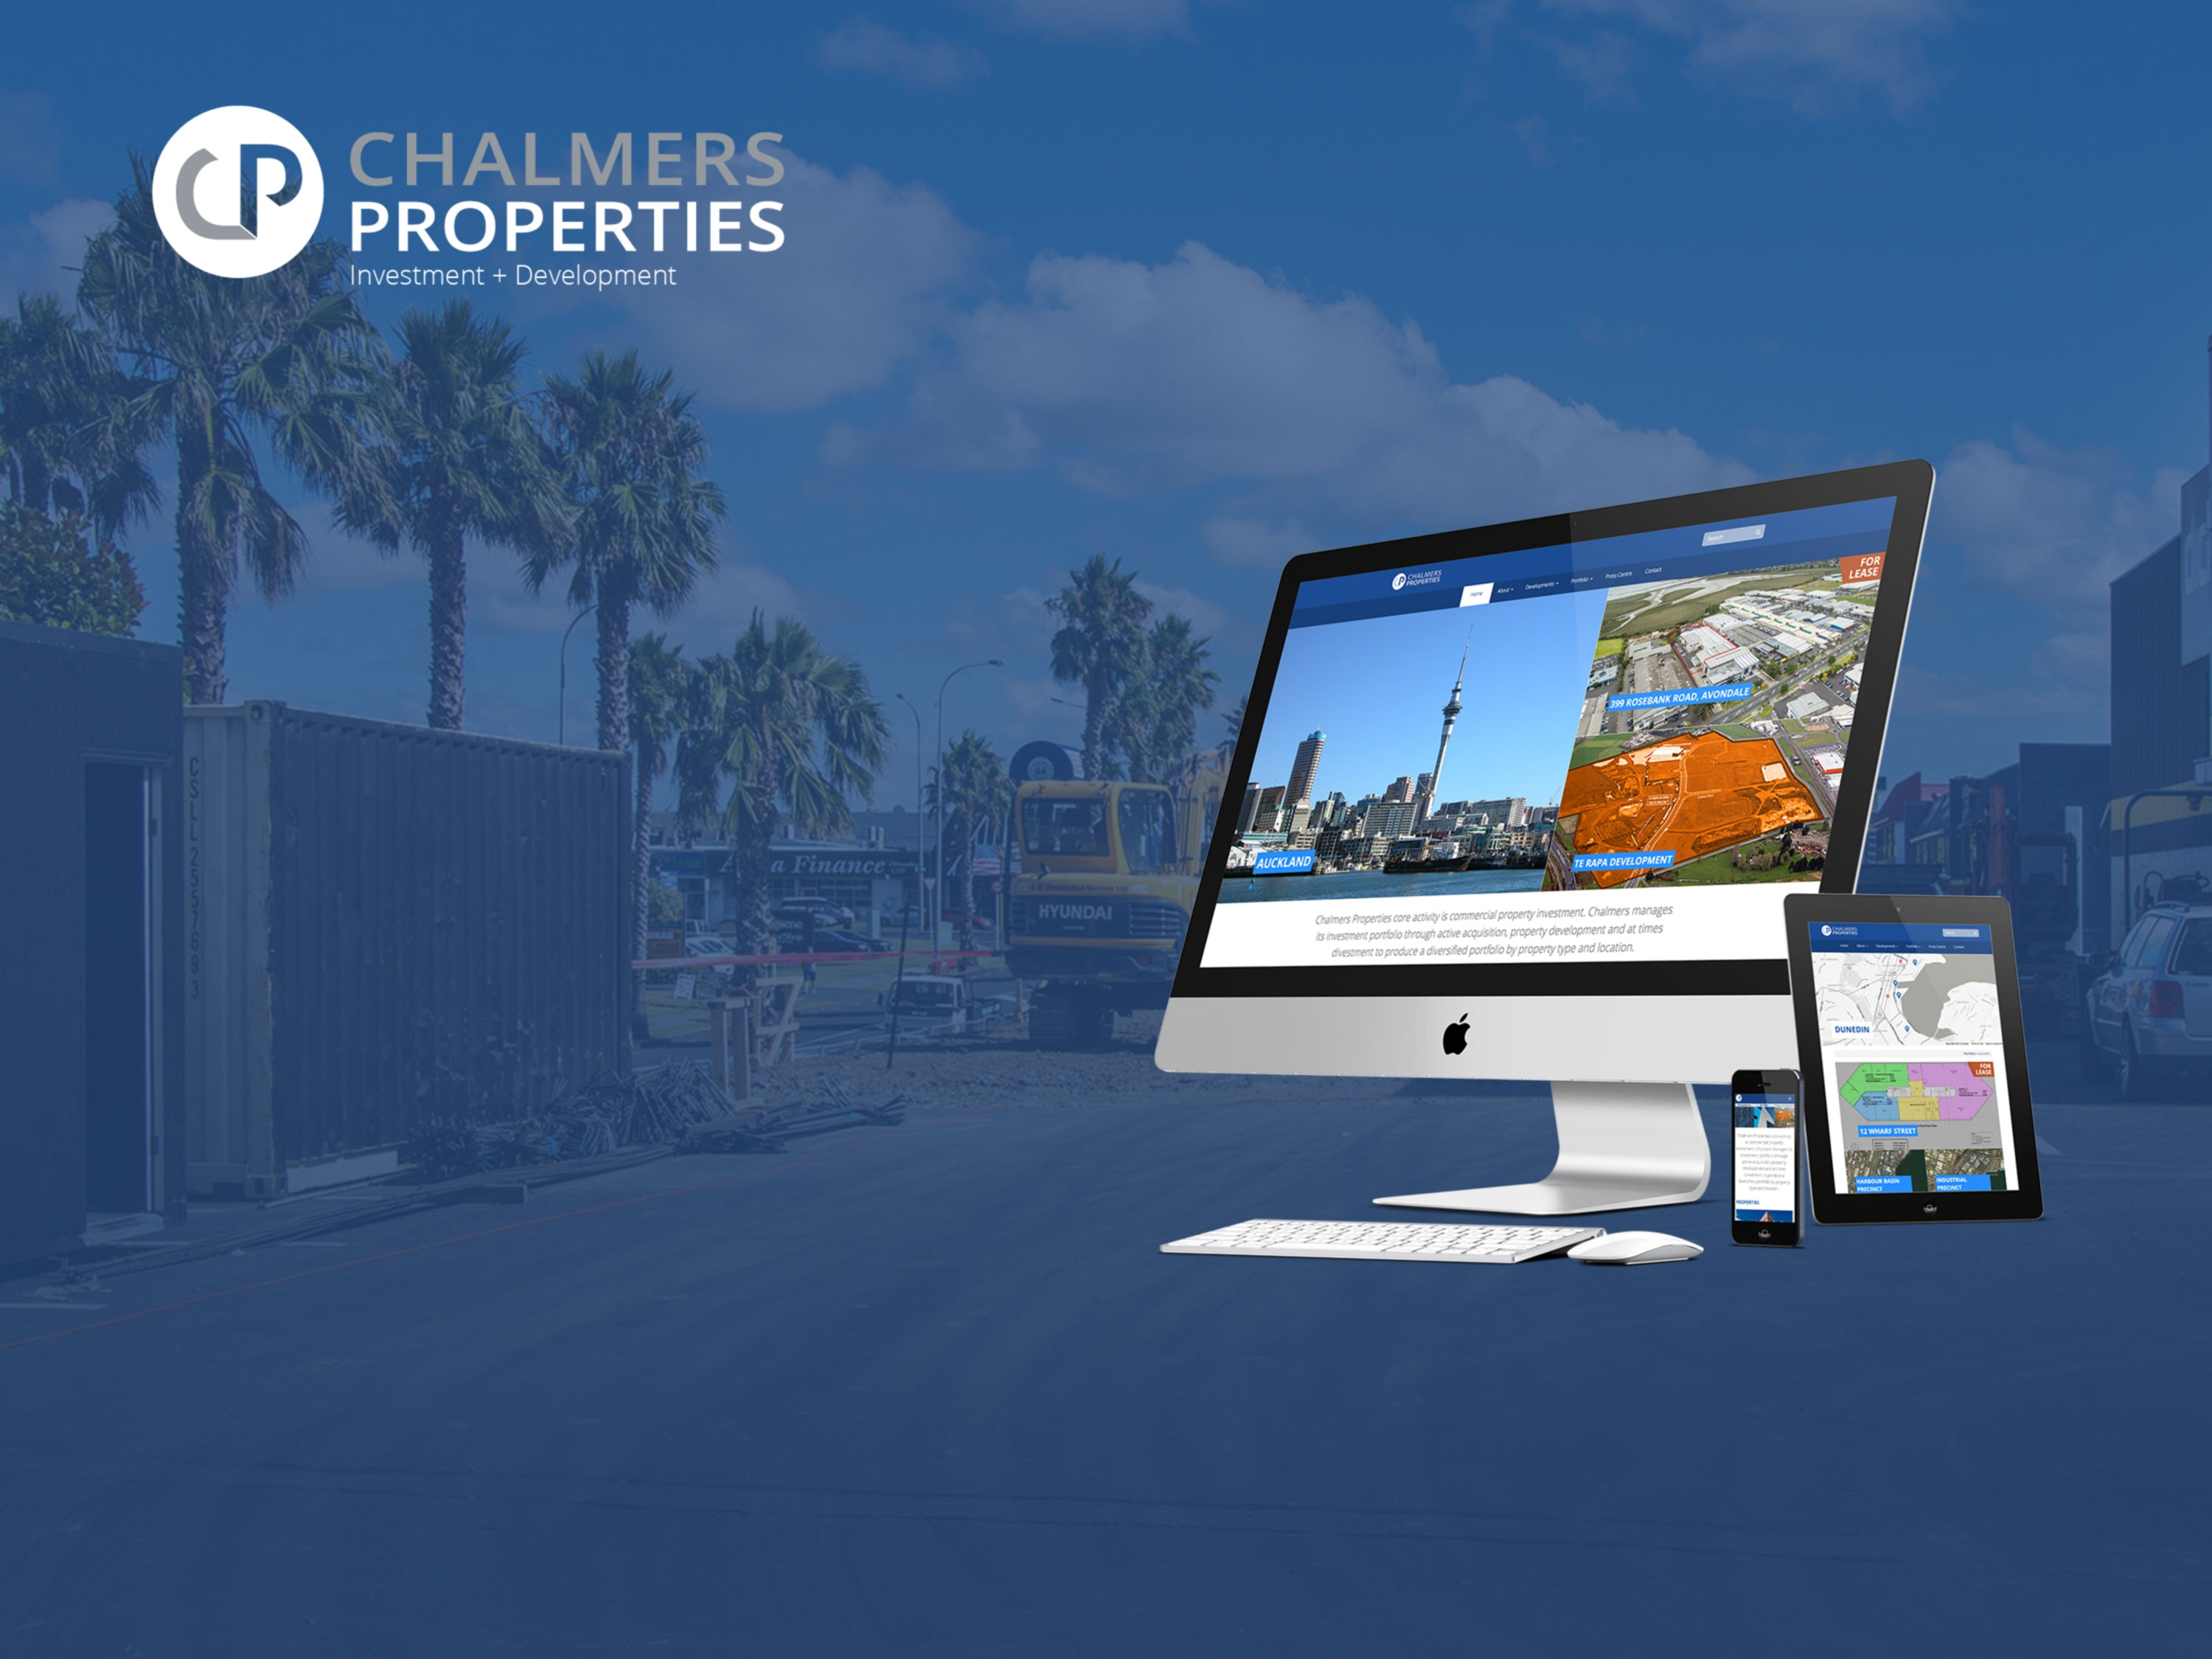 Chalmers Properties